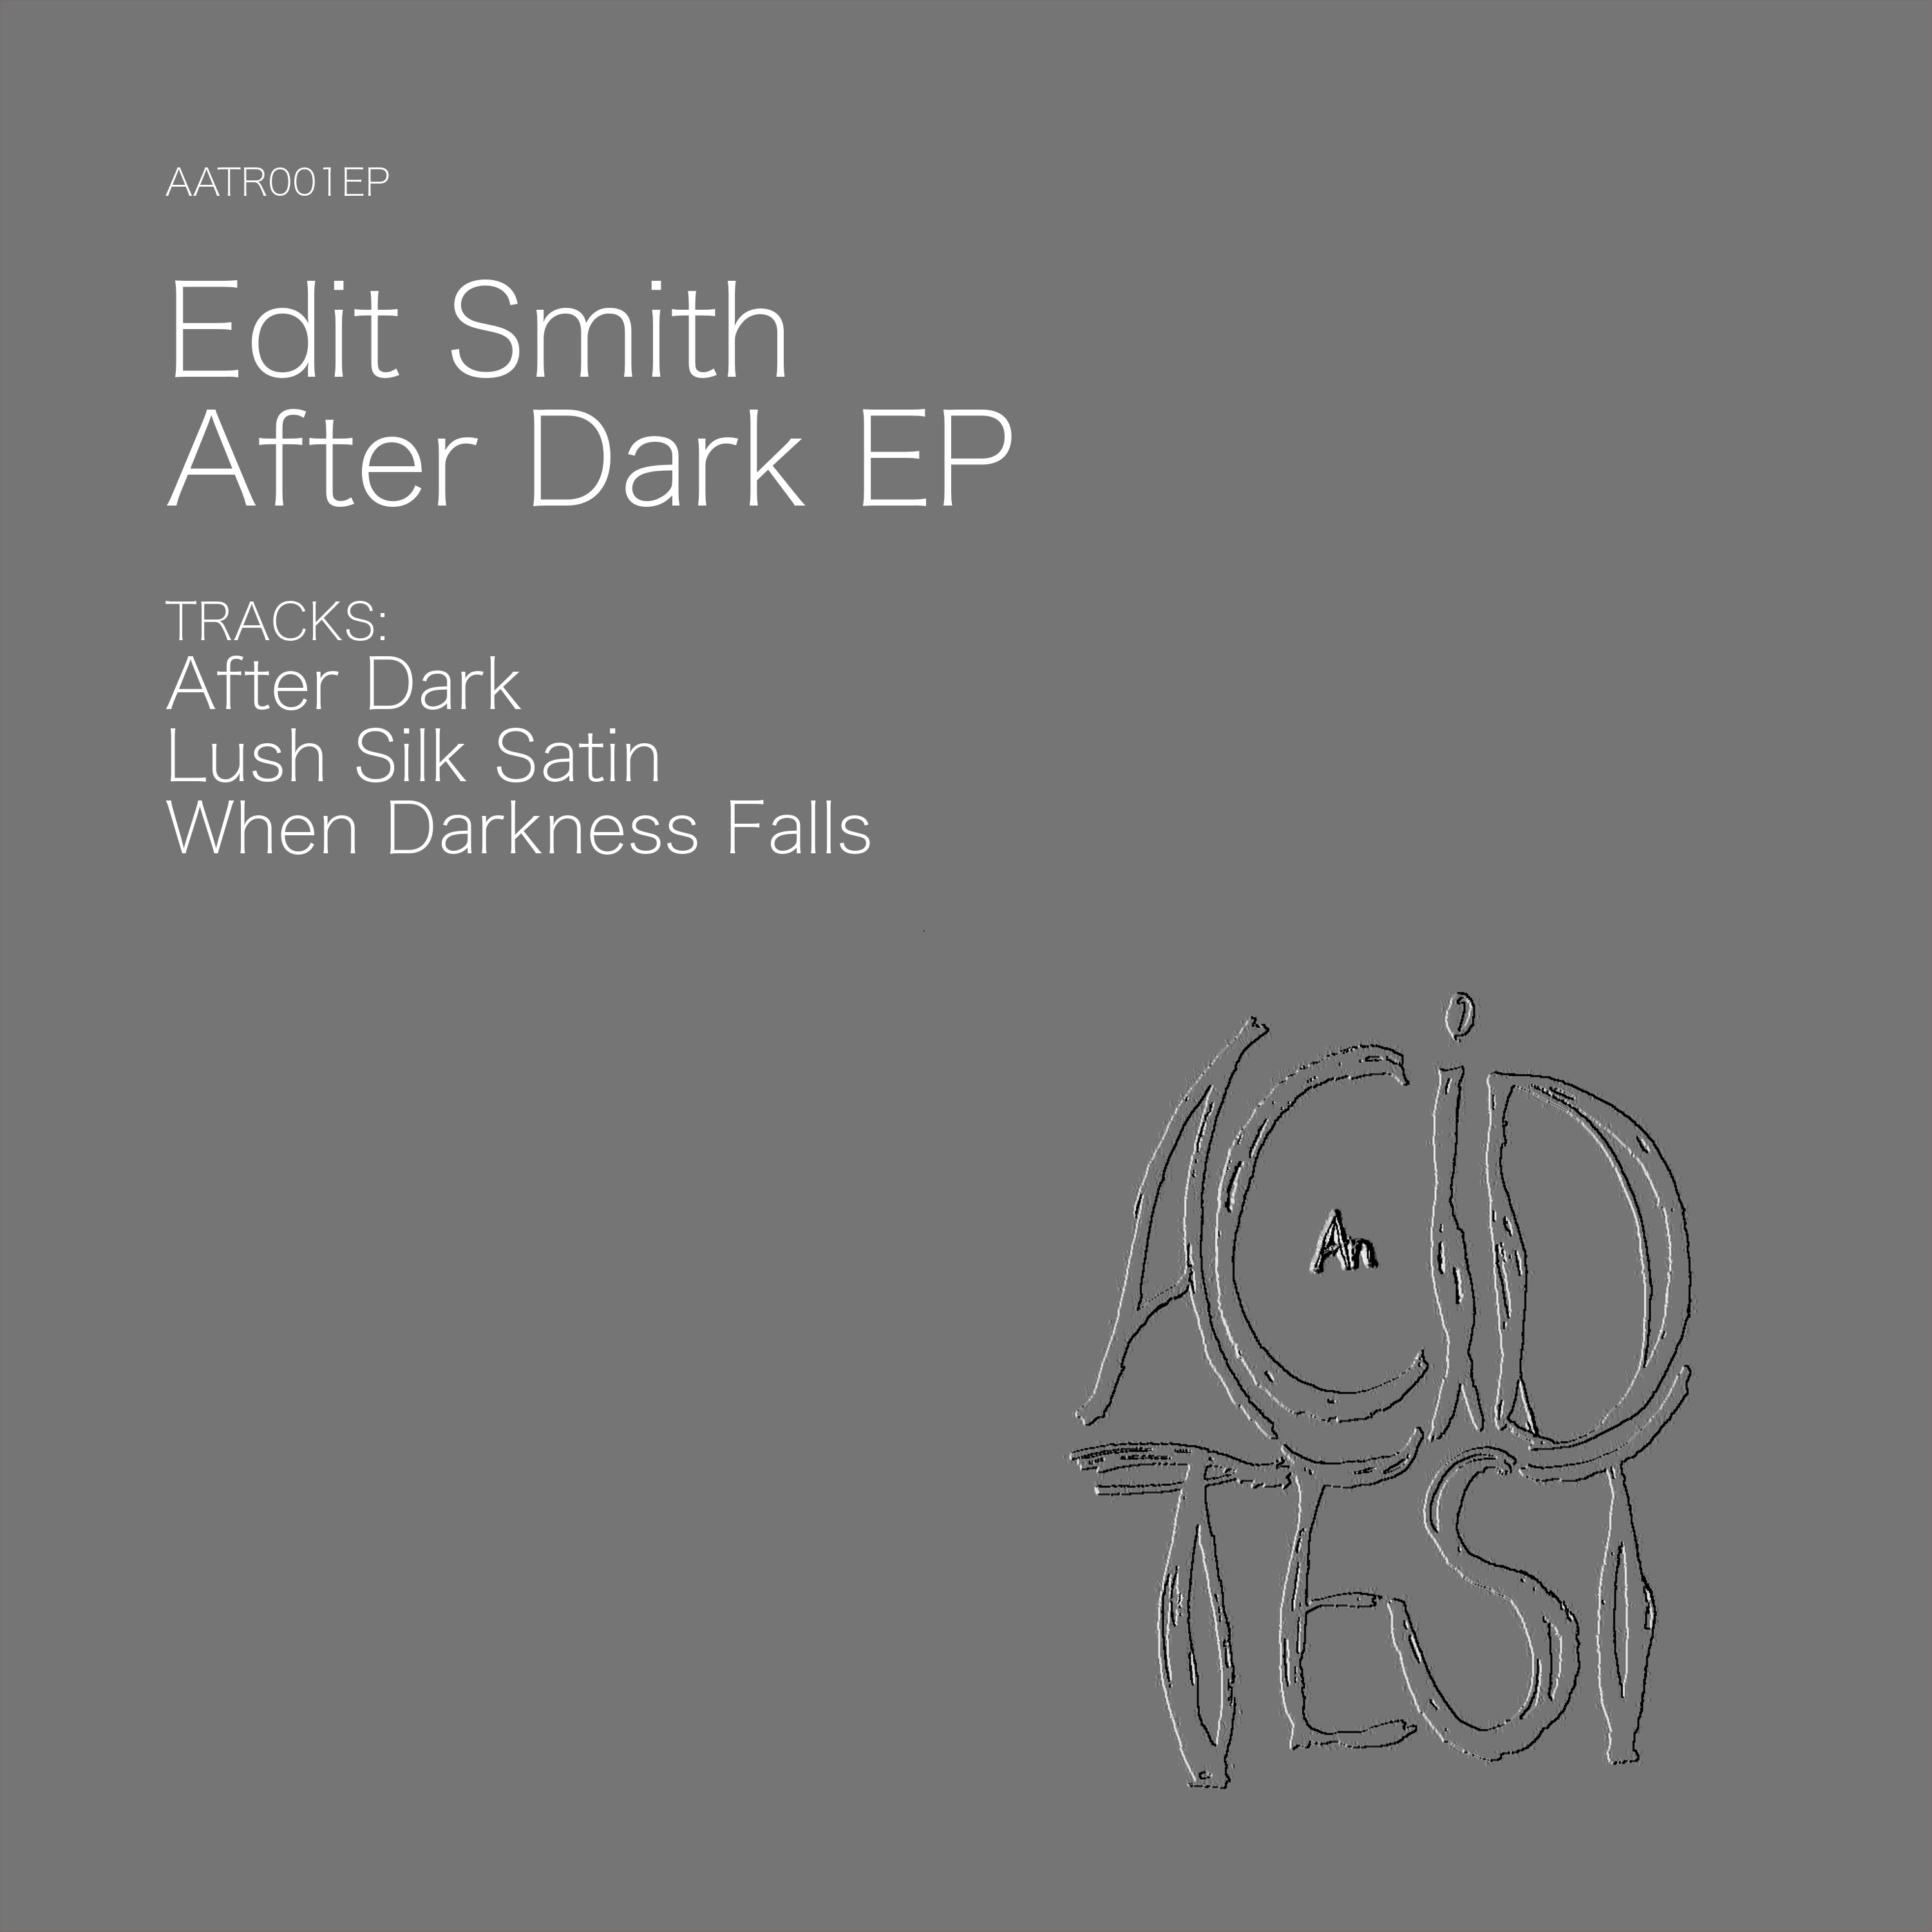 Edit Smith - After Dark E.P